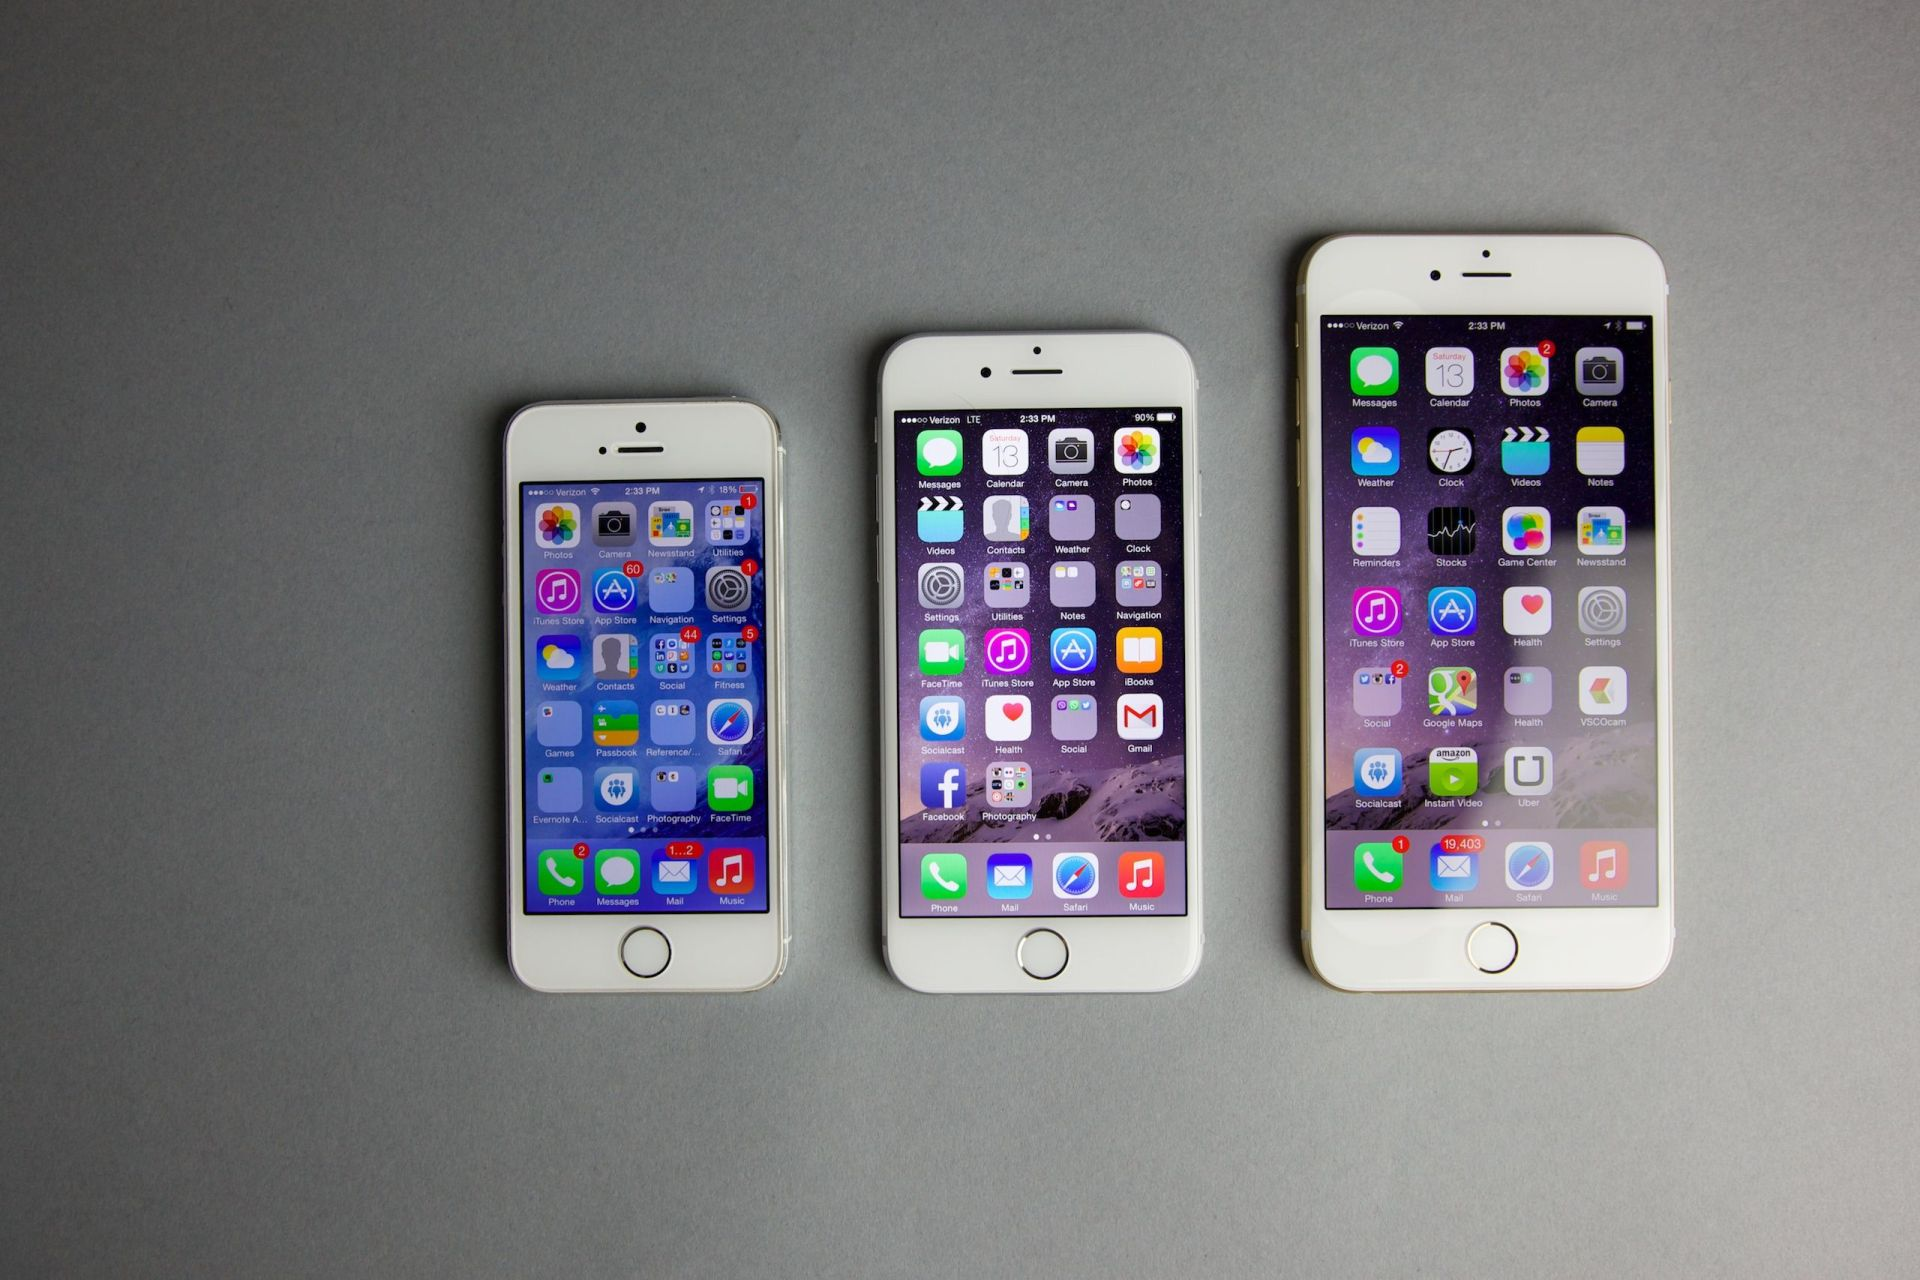 iPhone 5s, iPhone 6 e iPhone 6 Plus